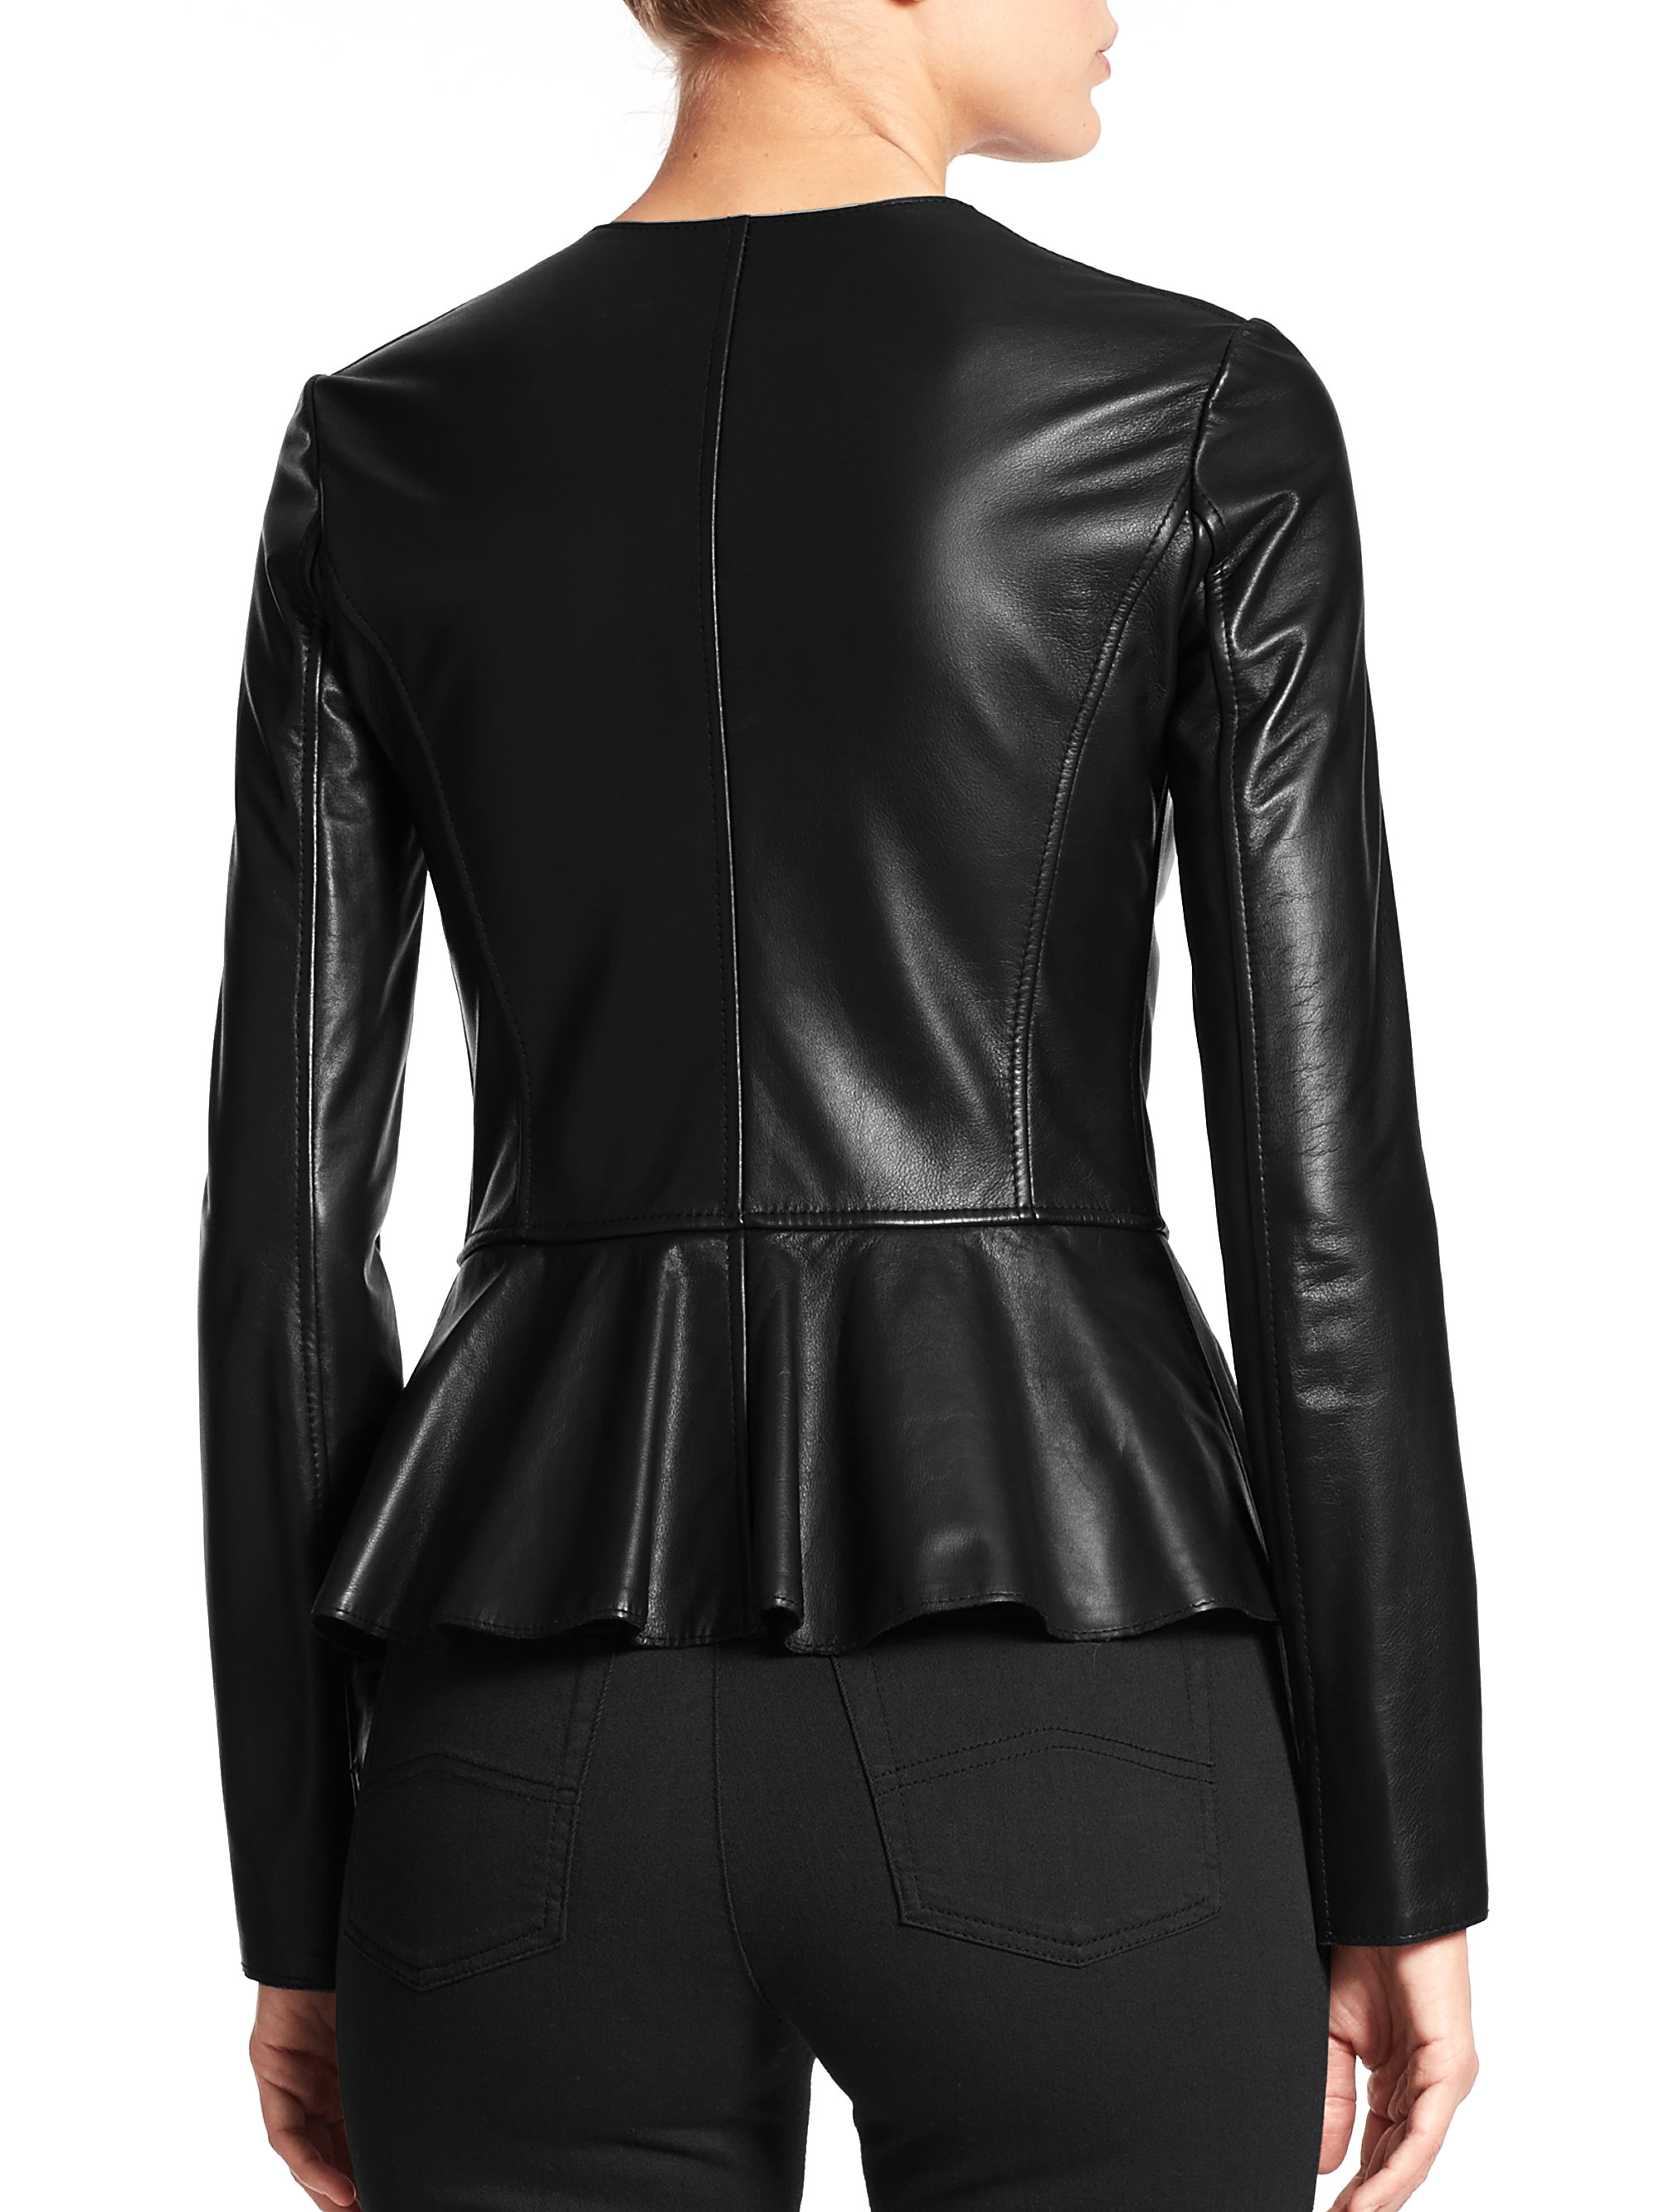 Armani Leather Peplum Jacket in Black